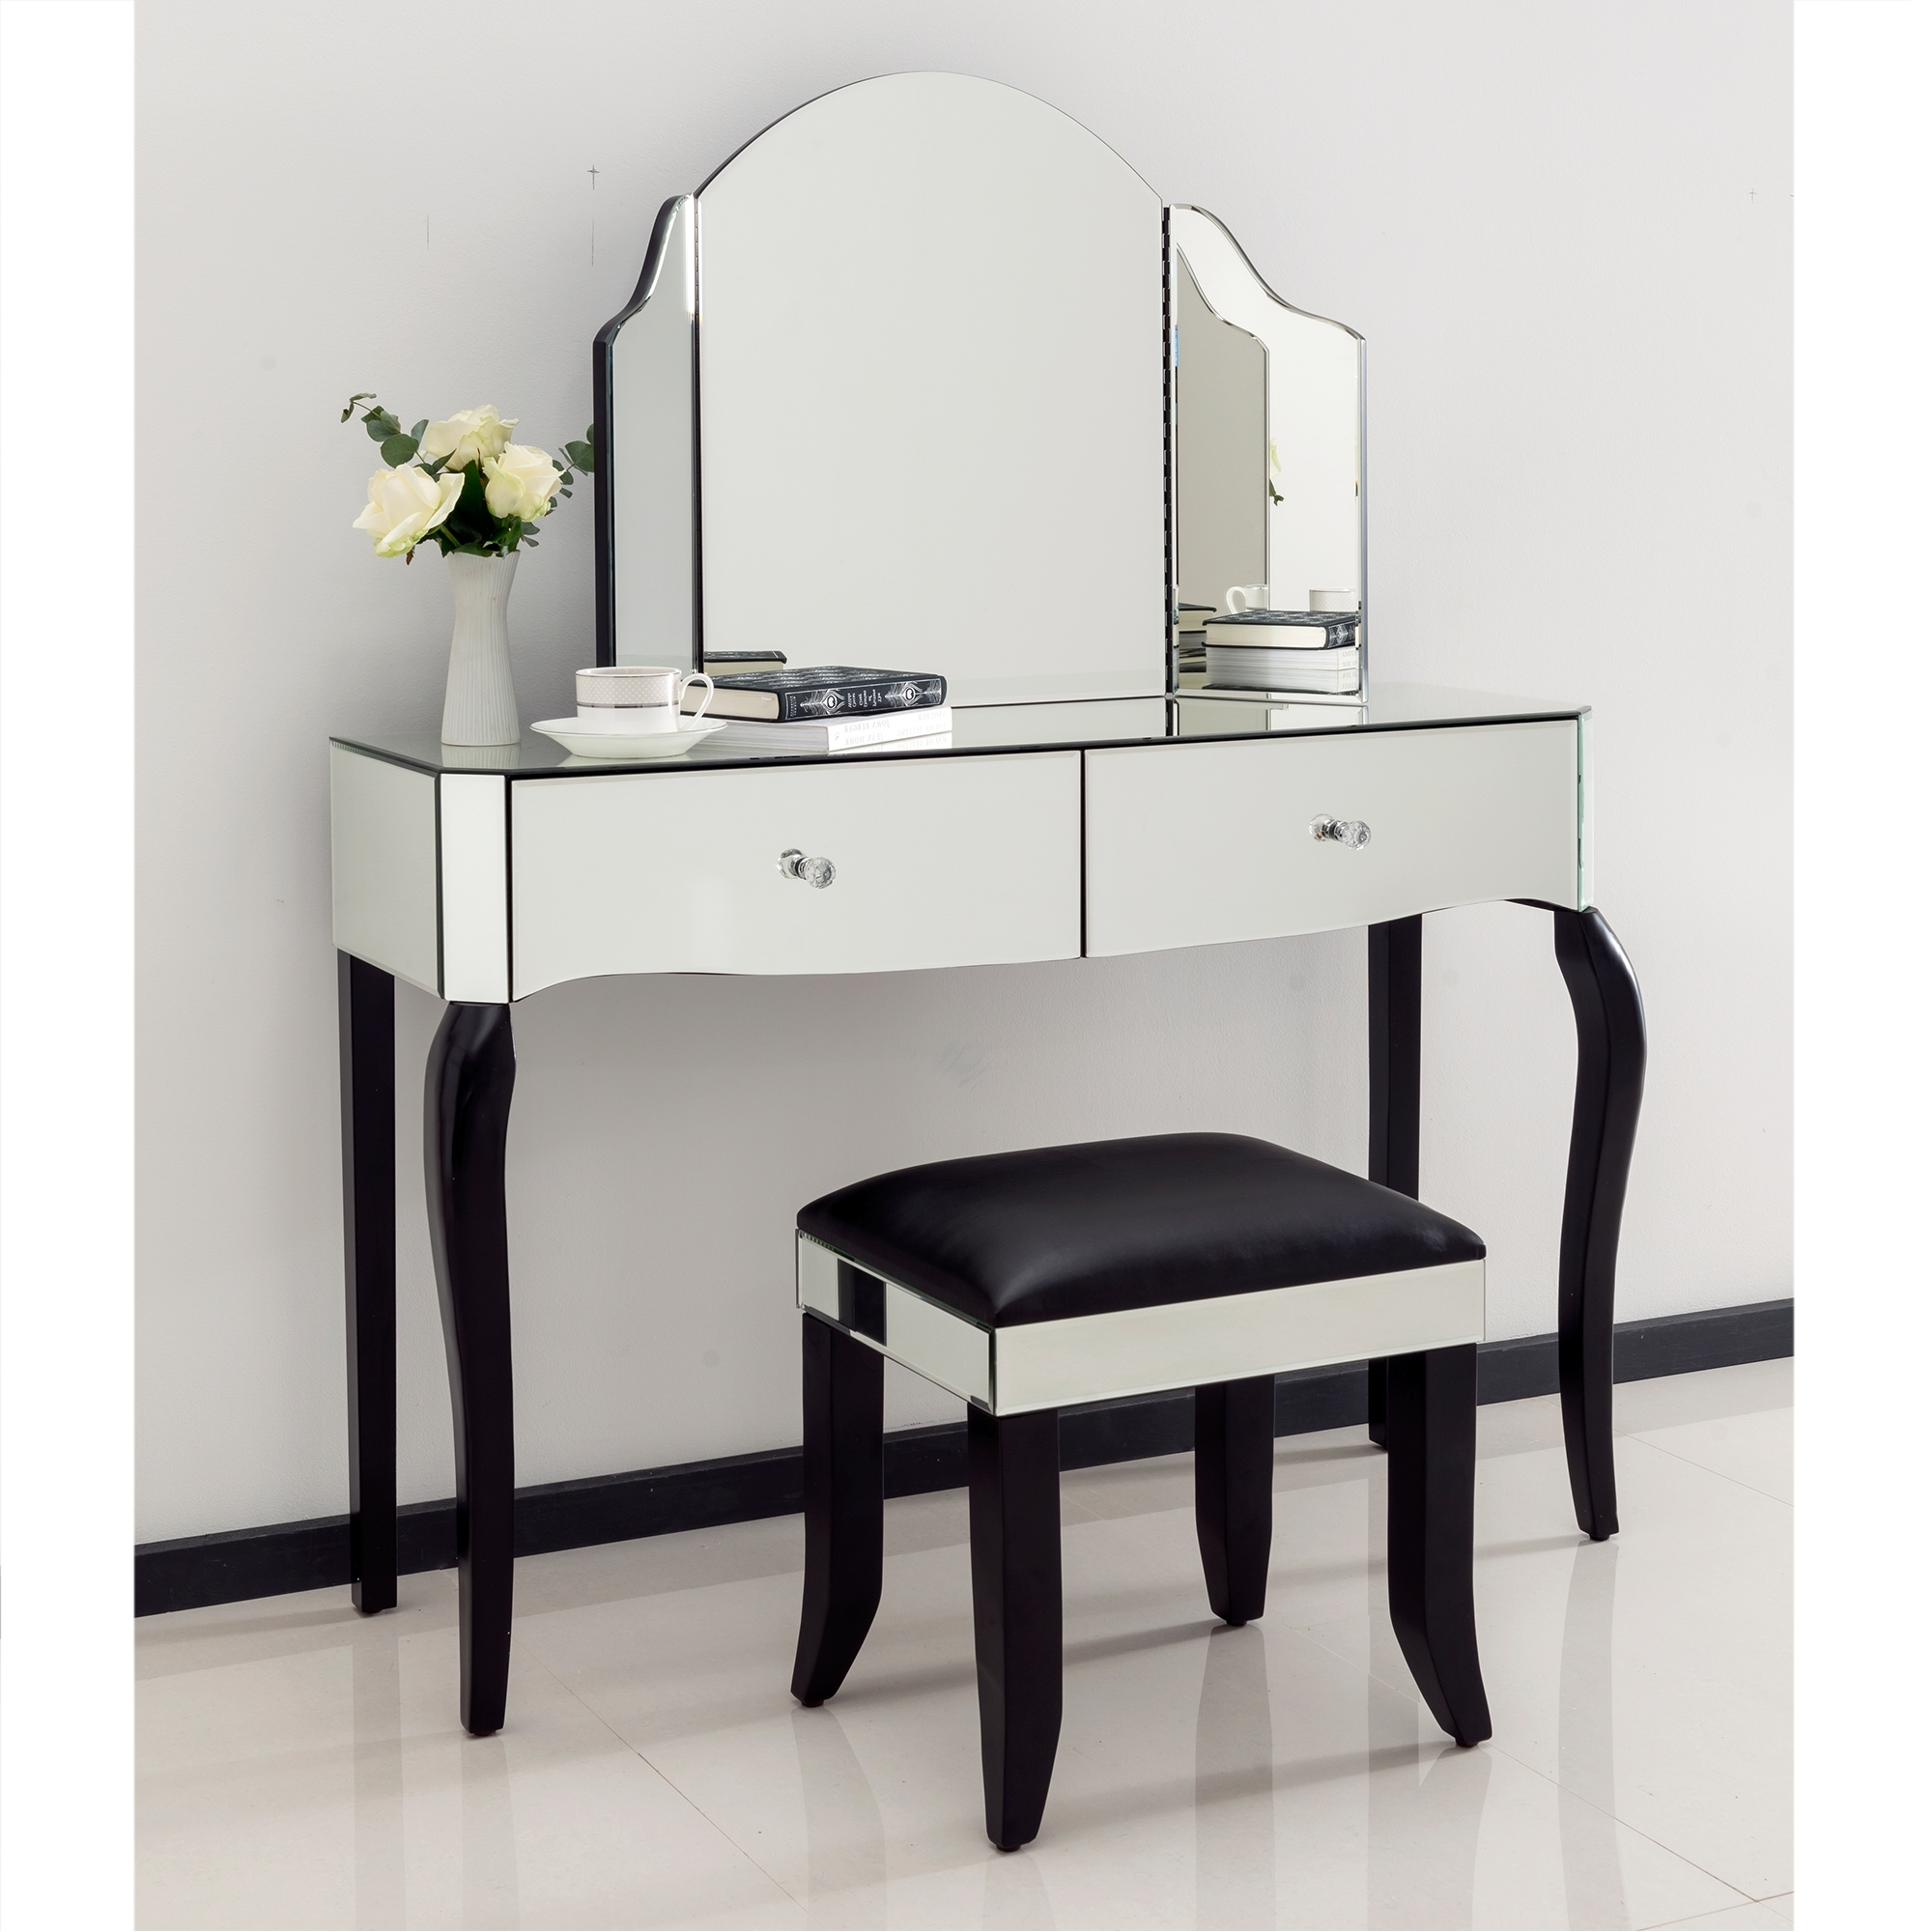 romano crystal mirrored dressing table set EYCJCMW